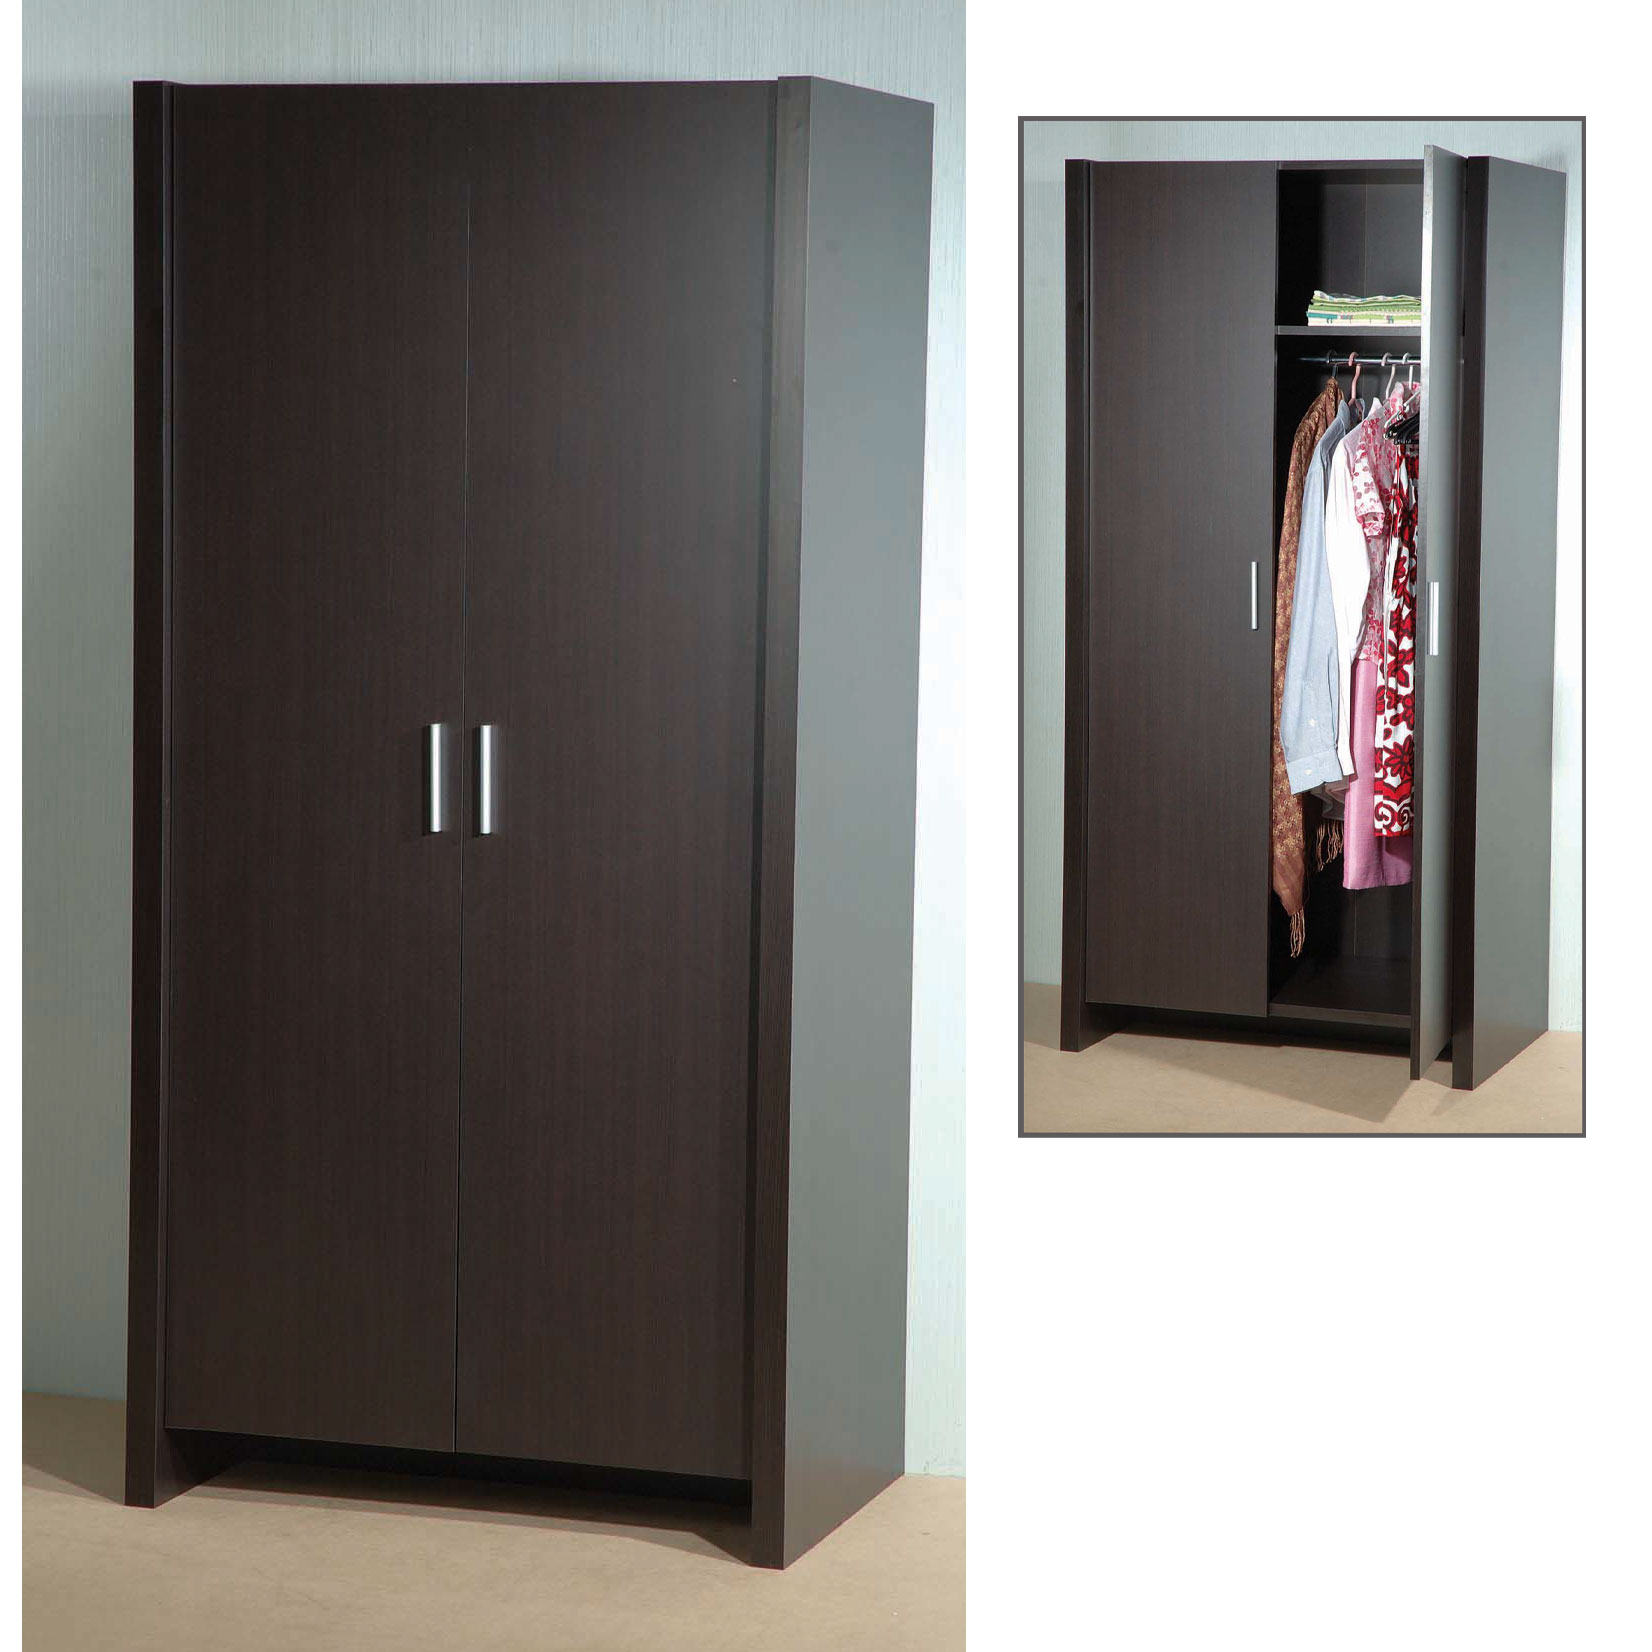 Dano 2 Door Wardrobe In Expresso Brown